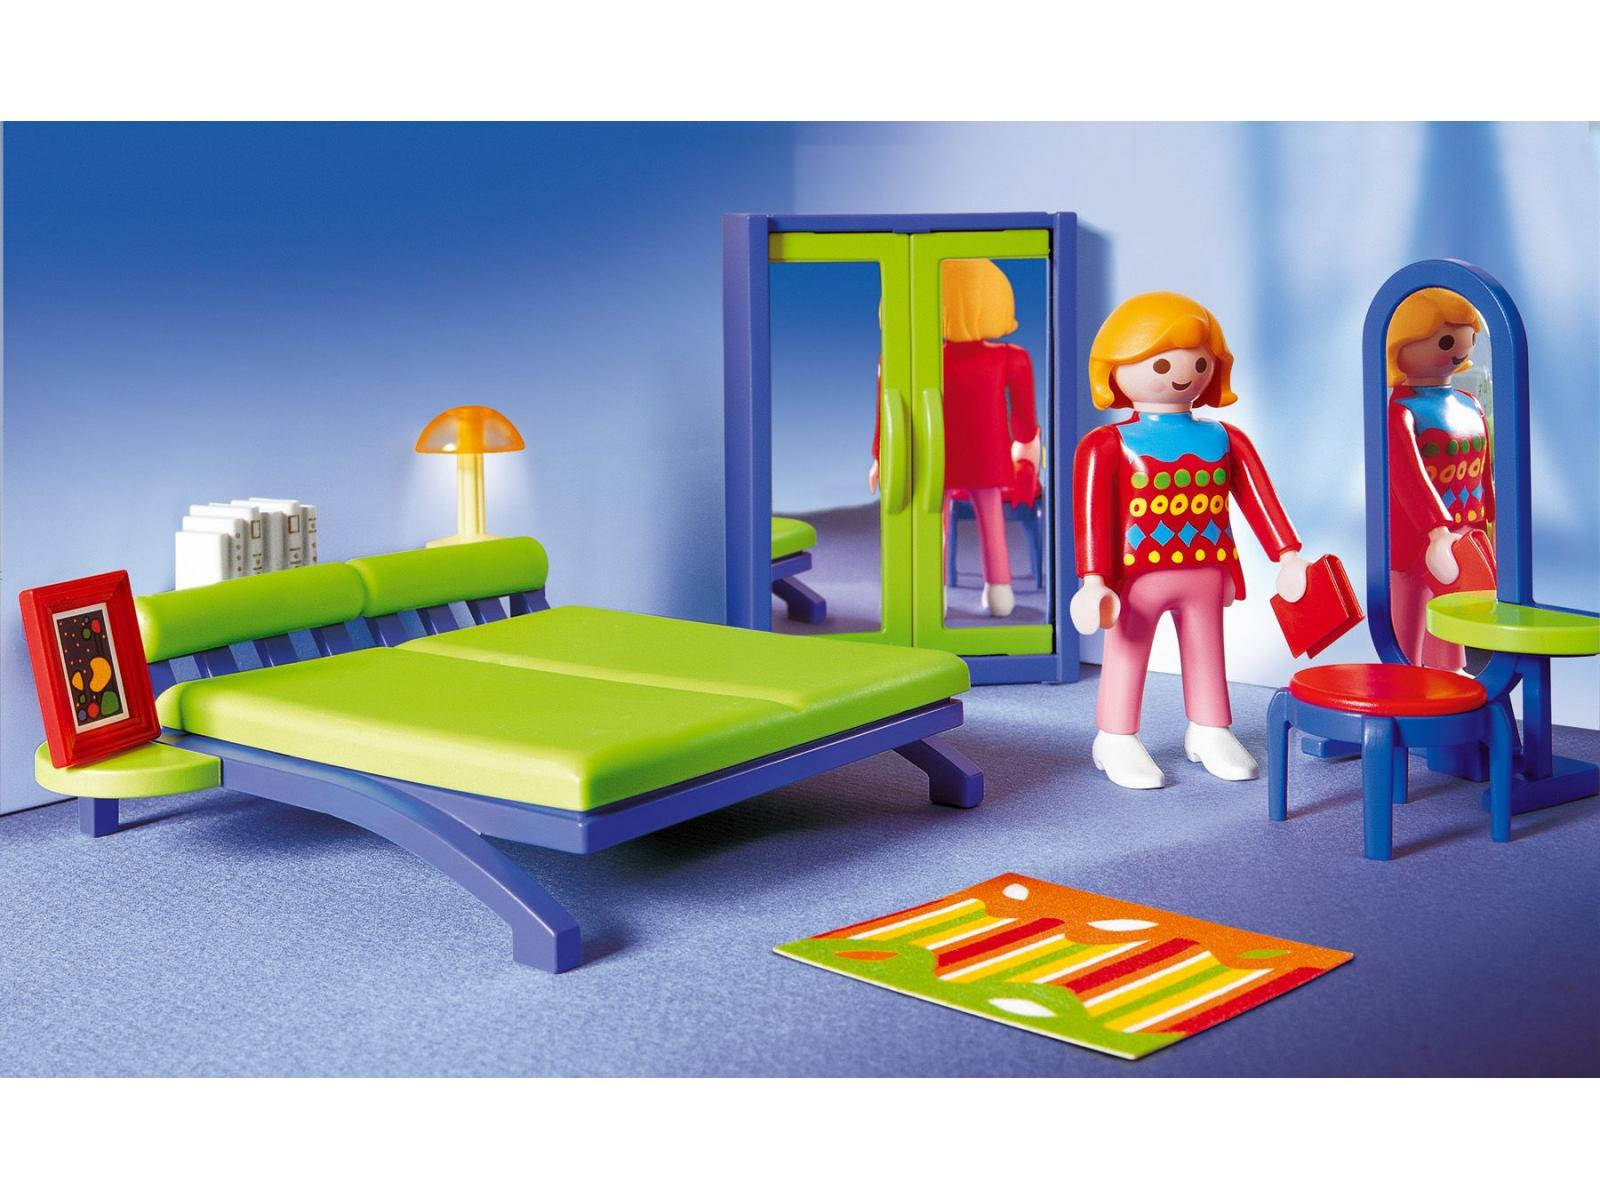 Playmobil maman avec chambre moderne for Lit parental moderne